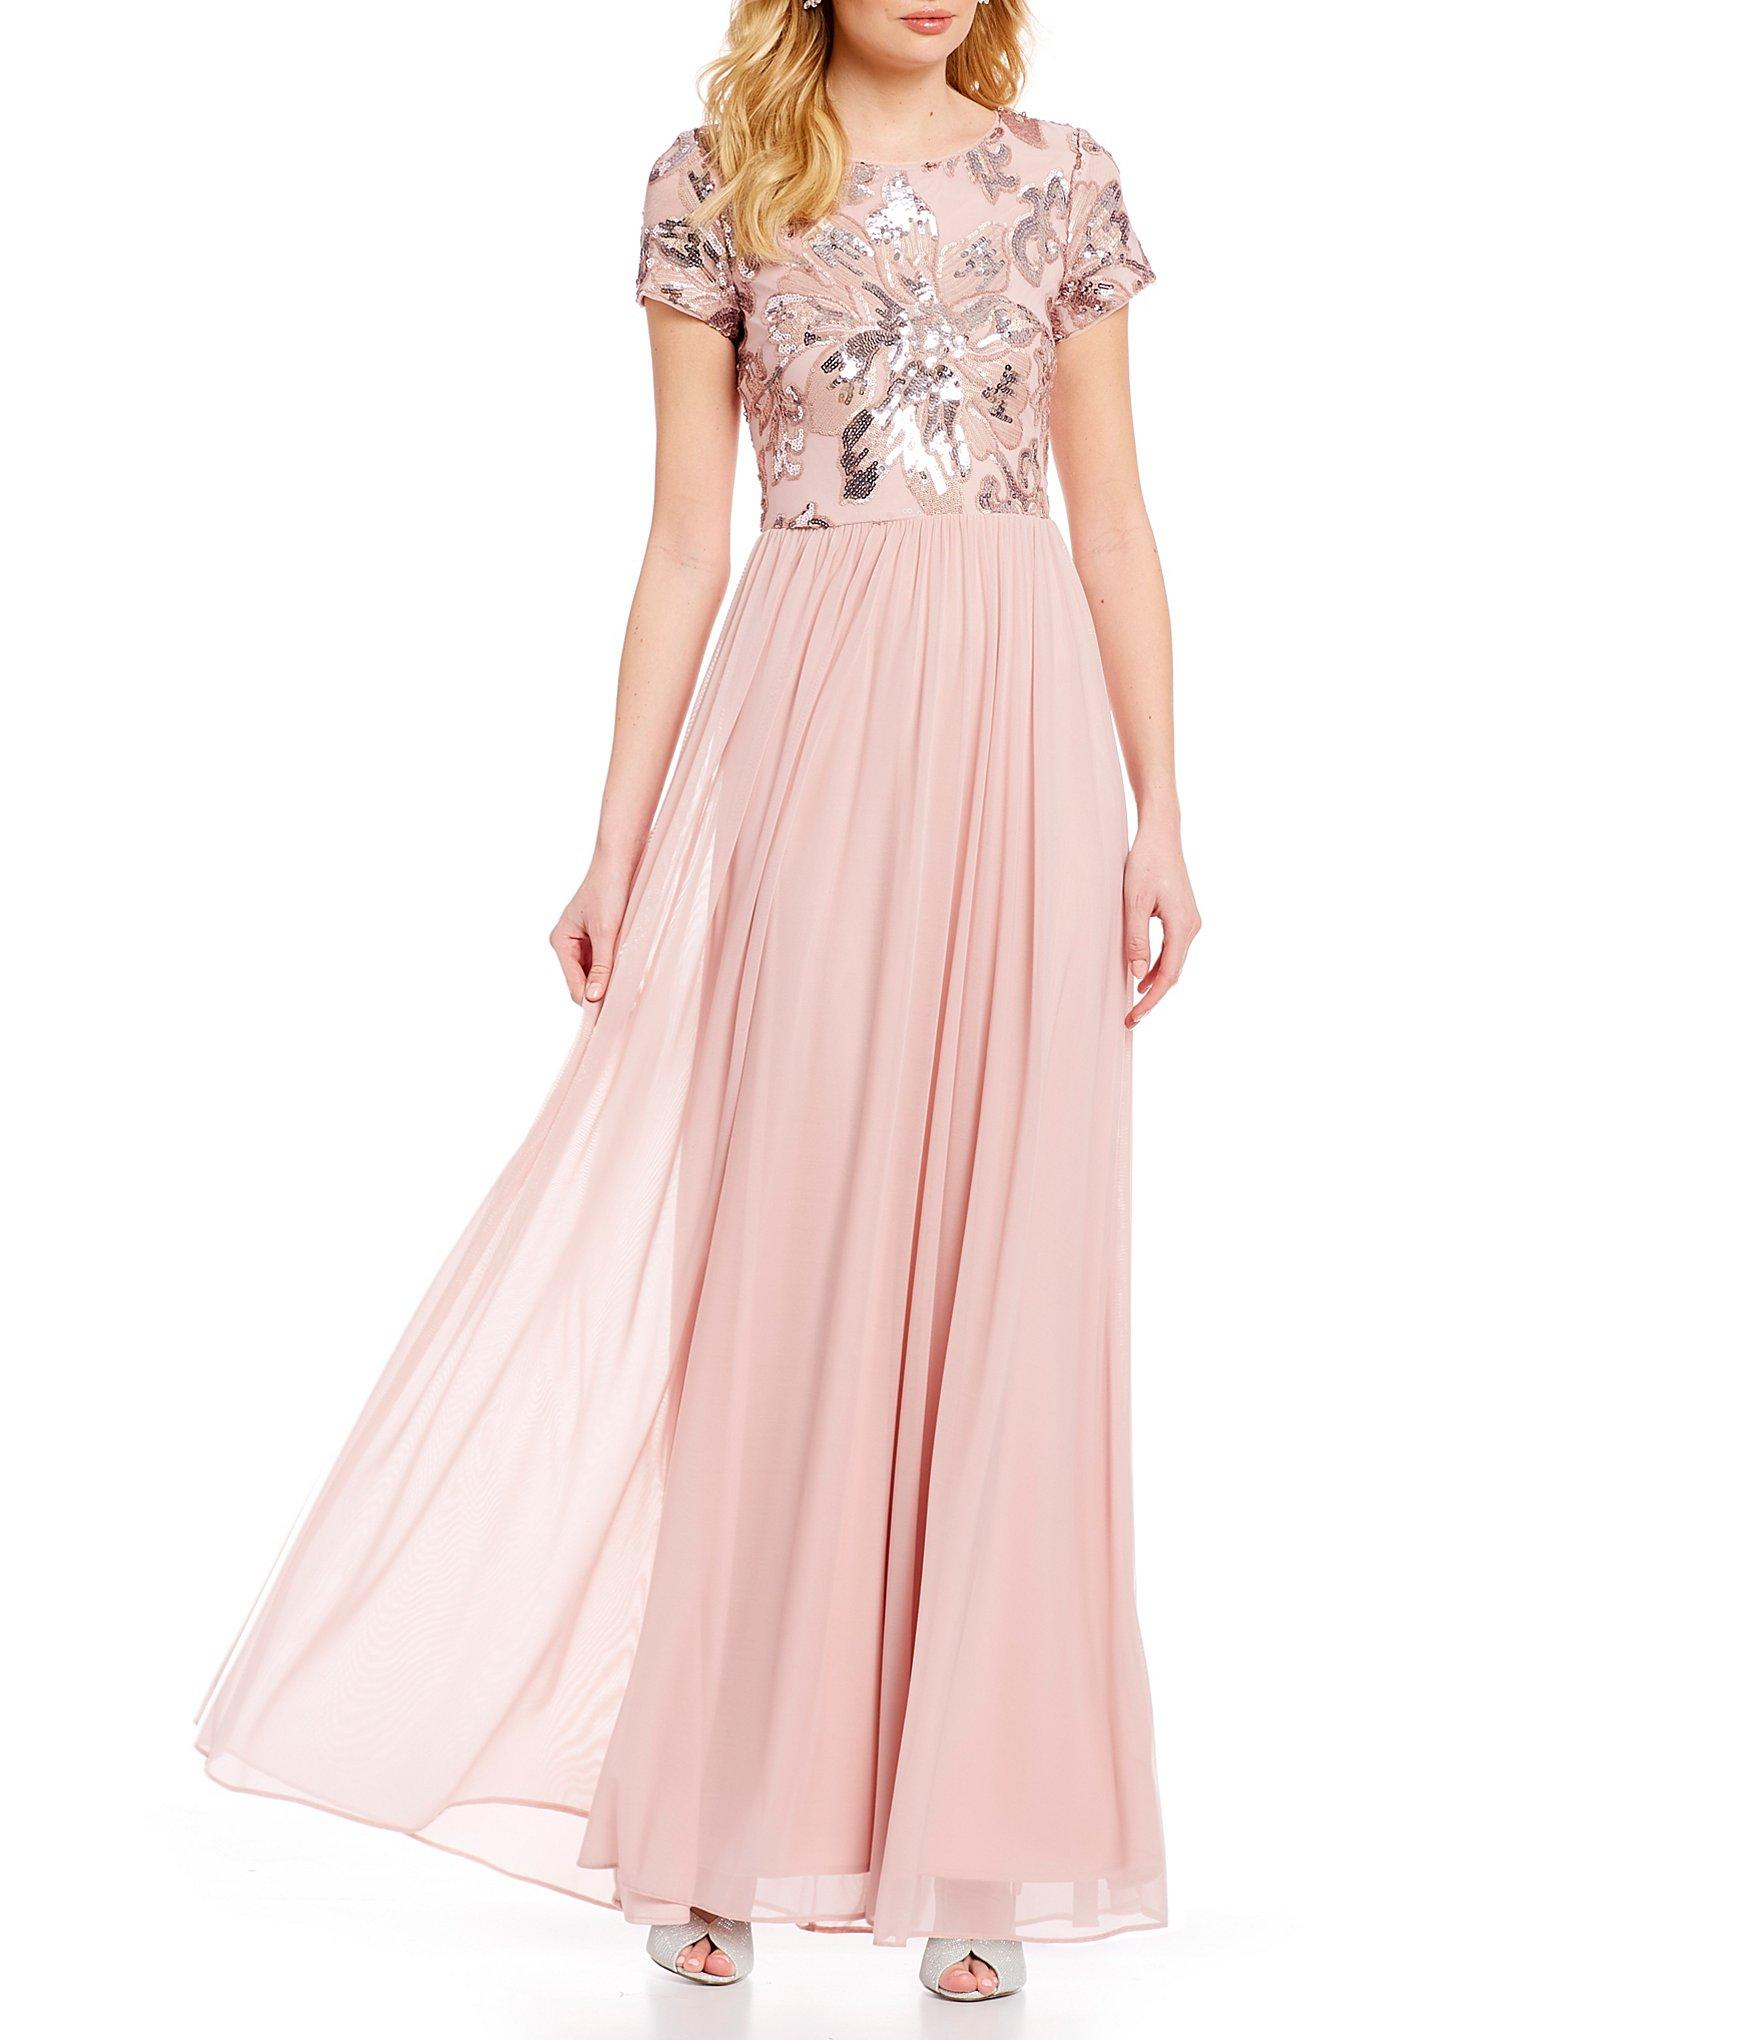 29cc4baf Betsy & Adam. Women's Pink Floral Sequin Beaded Bodice Empire Waist Gown